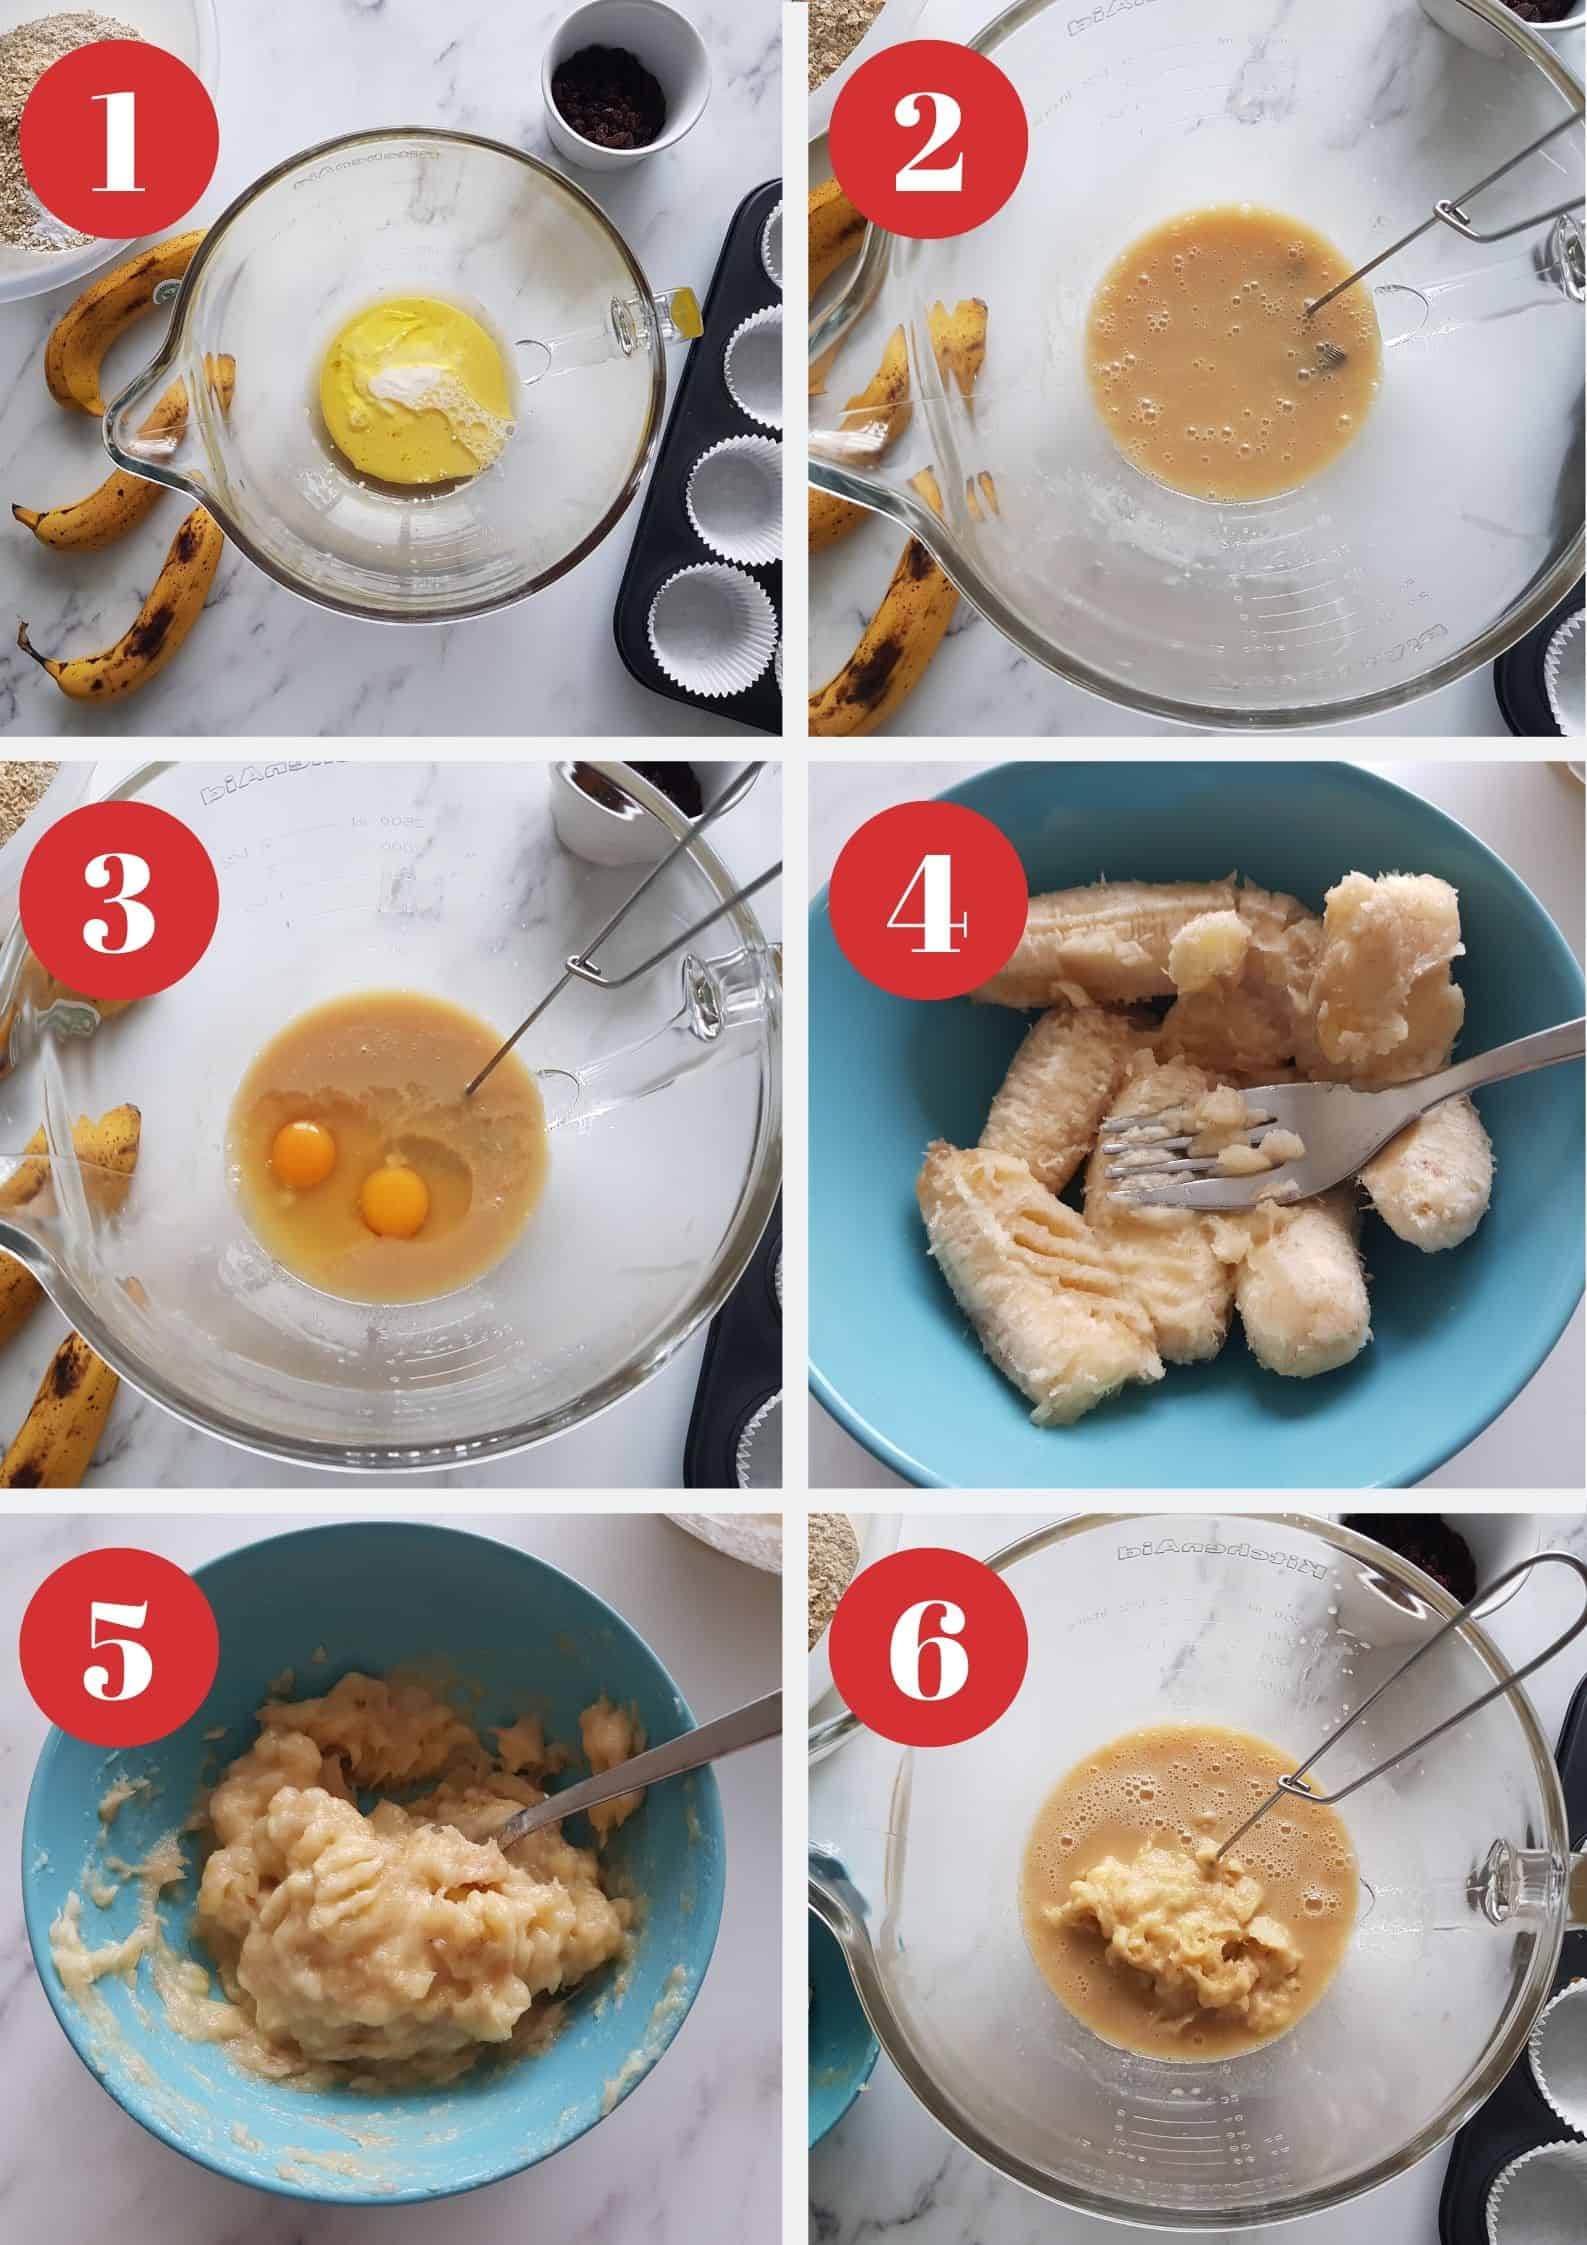 Infographic showing how to make banana oat muffins with raisins.